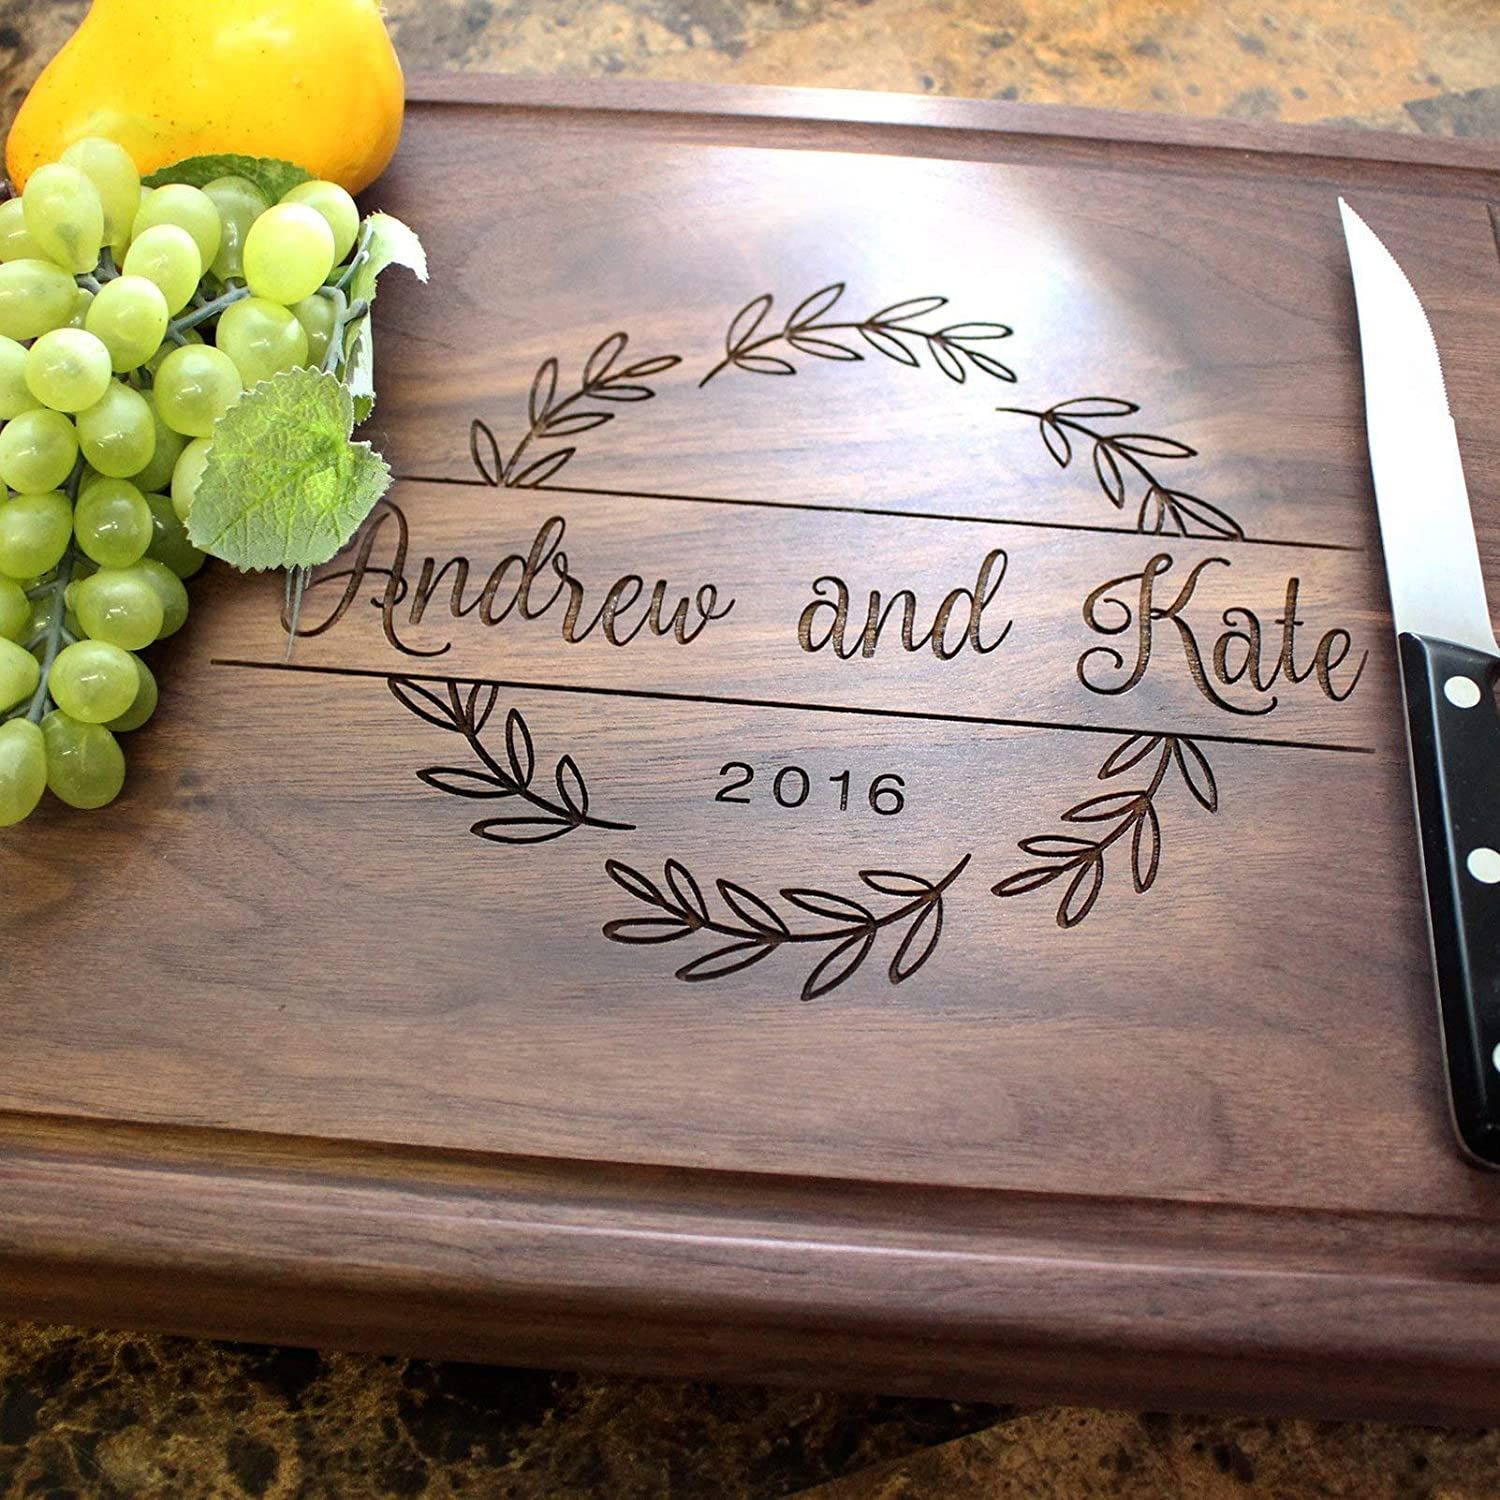 Engagement Wreath Personalized Engraved Chopping Block – Engagement Party, Wedding Shower, Wedding Gift, Anniversary Gift. #215